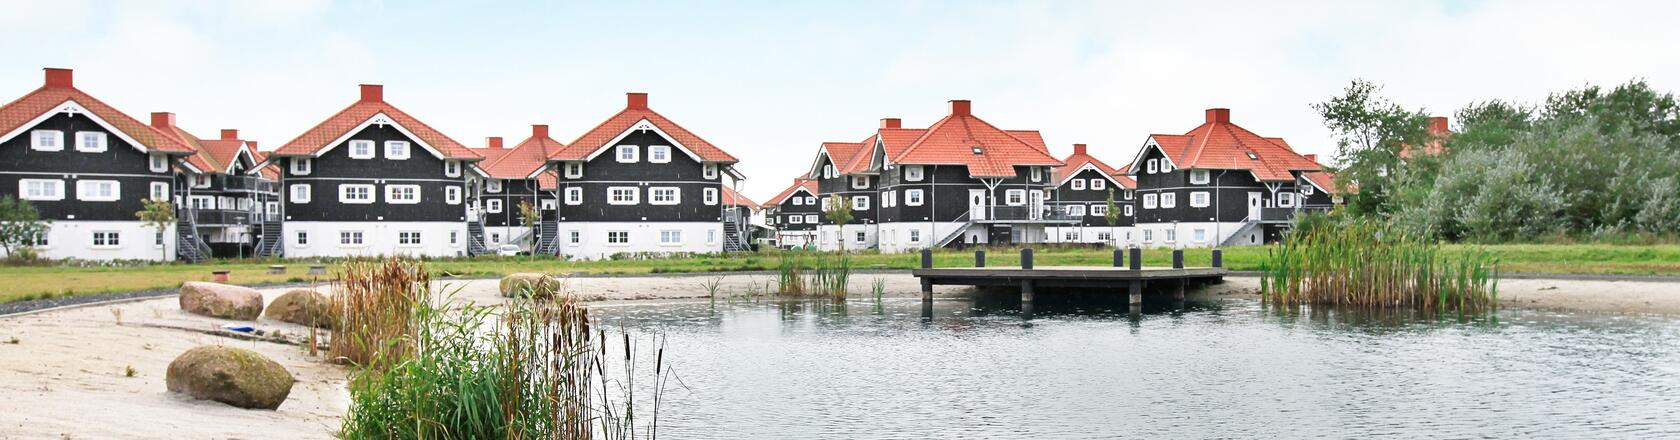 Ullerslev in Denmark - Rent a holiday home  with DanCenter